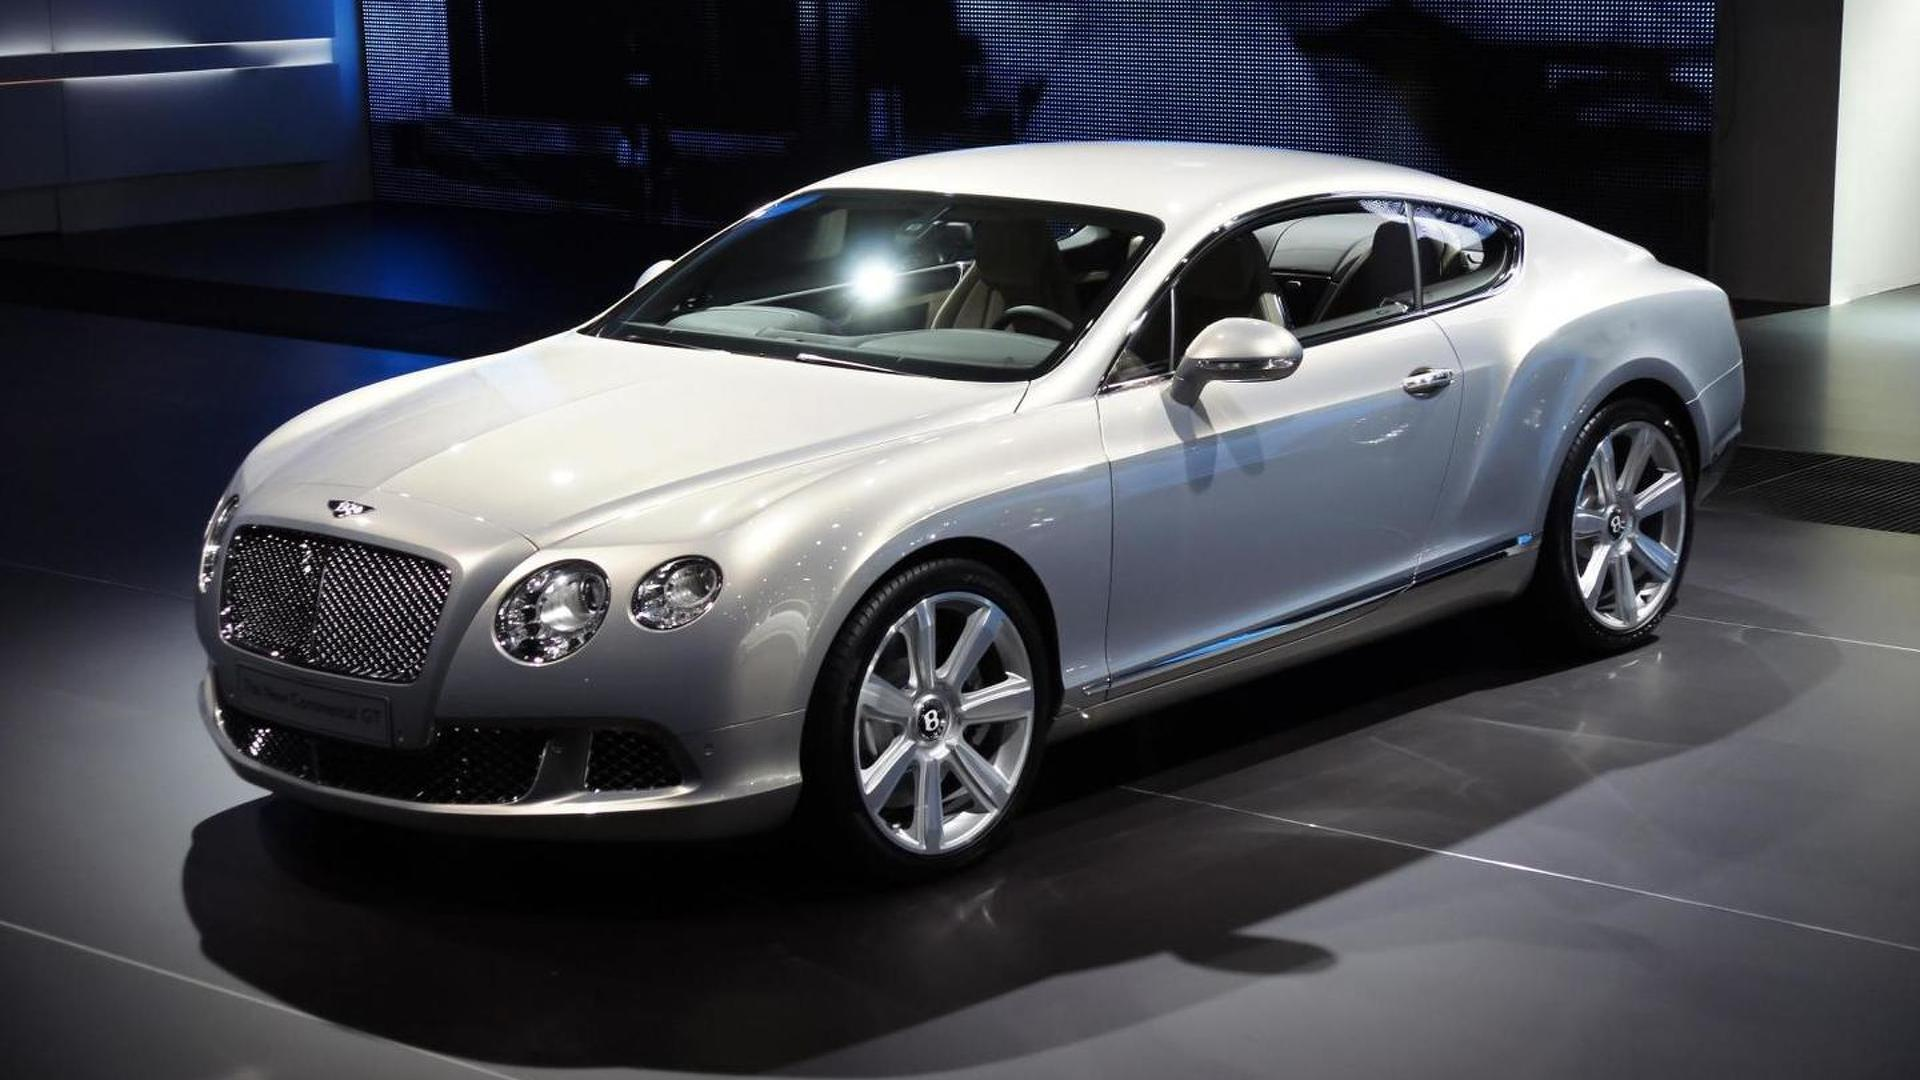 2011 bentley continental gt pricing released 2011 bentley continental gt pricing released product 2010 09 29 150418 vanachro Image collections